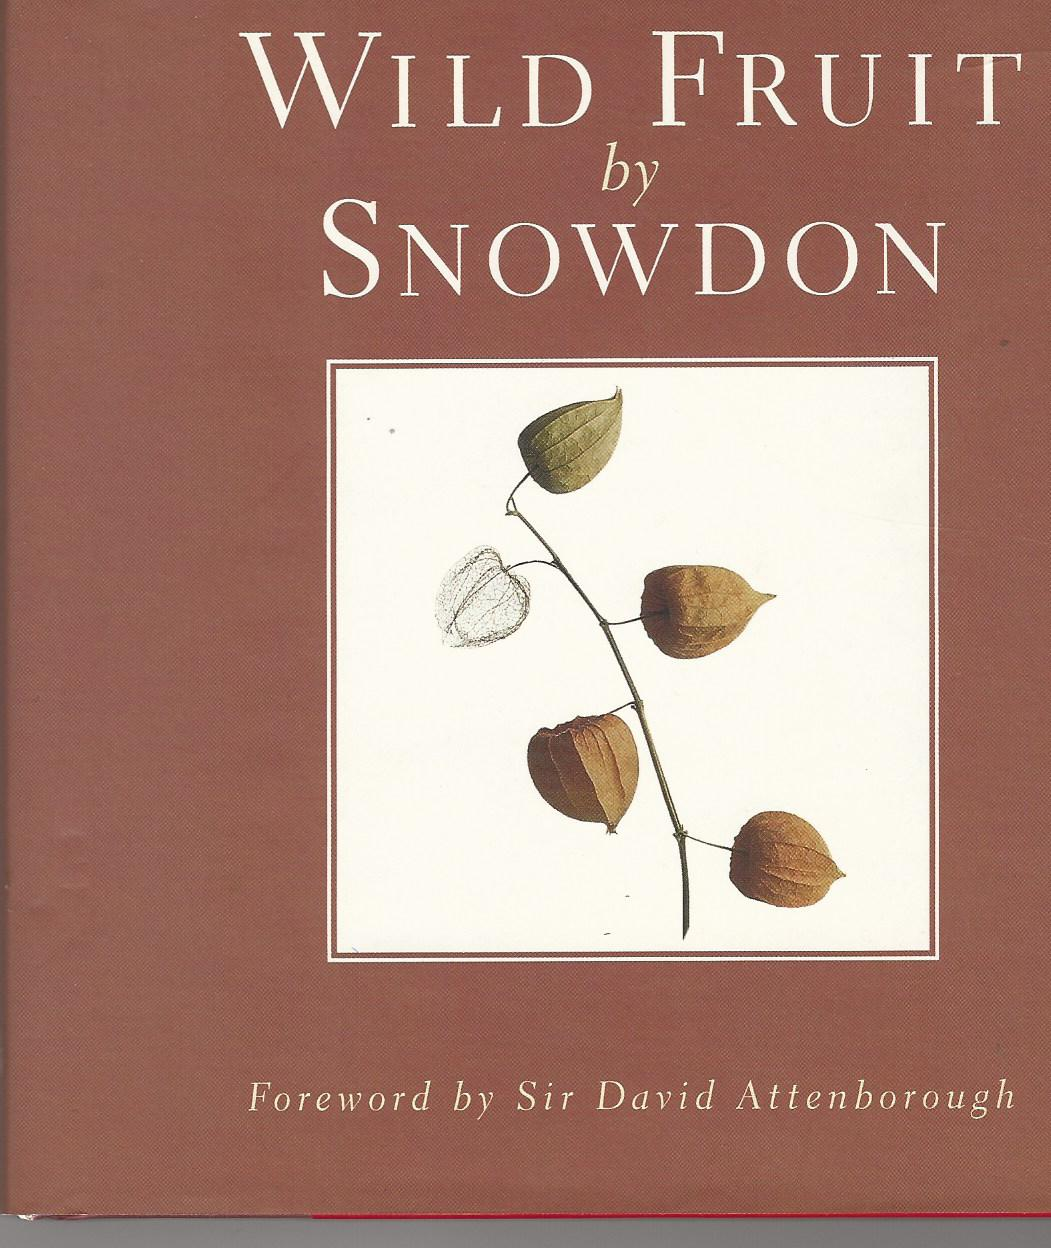 Image for Wild Fruit by Snowdon.